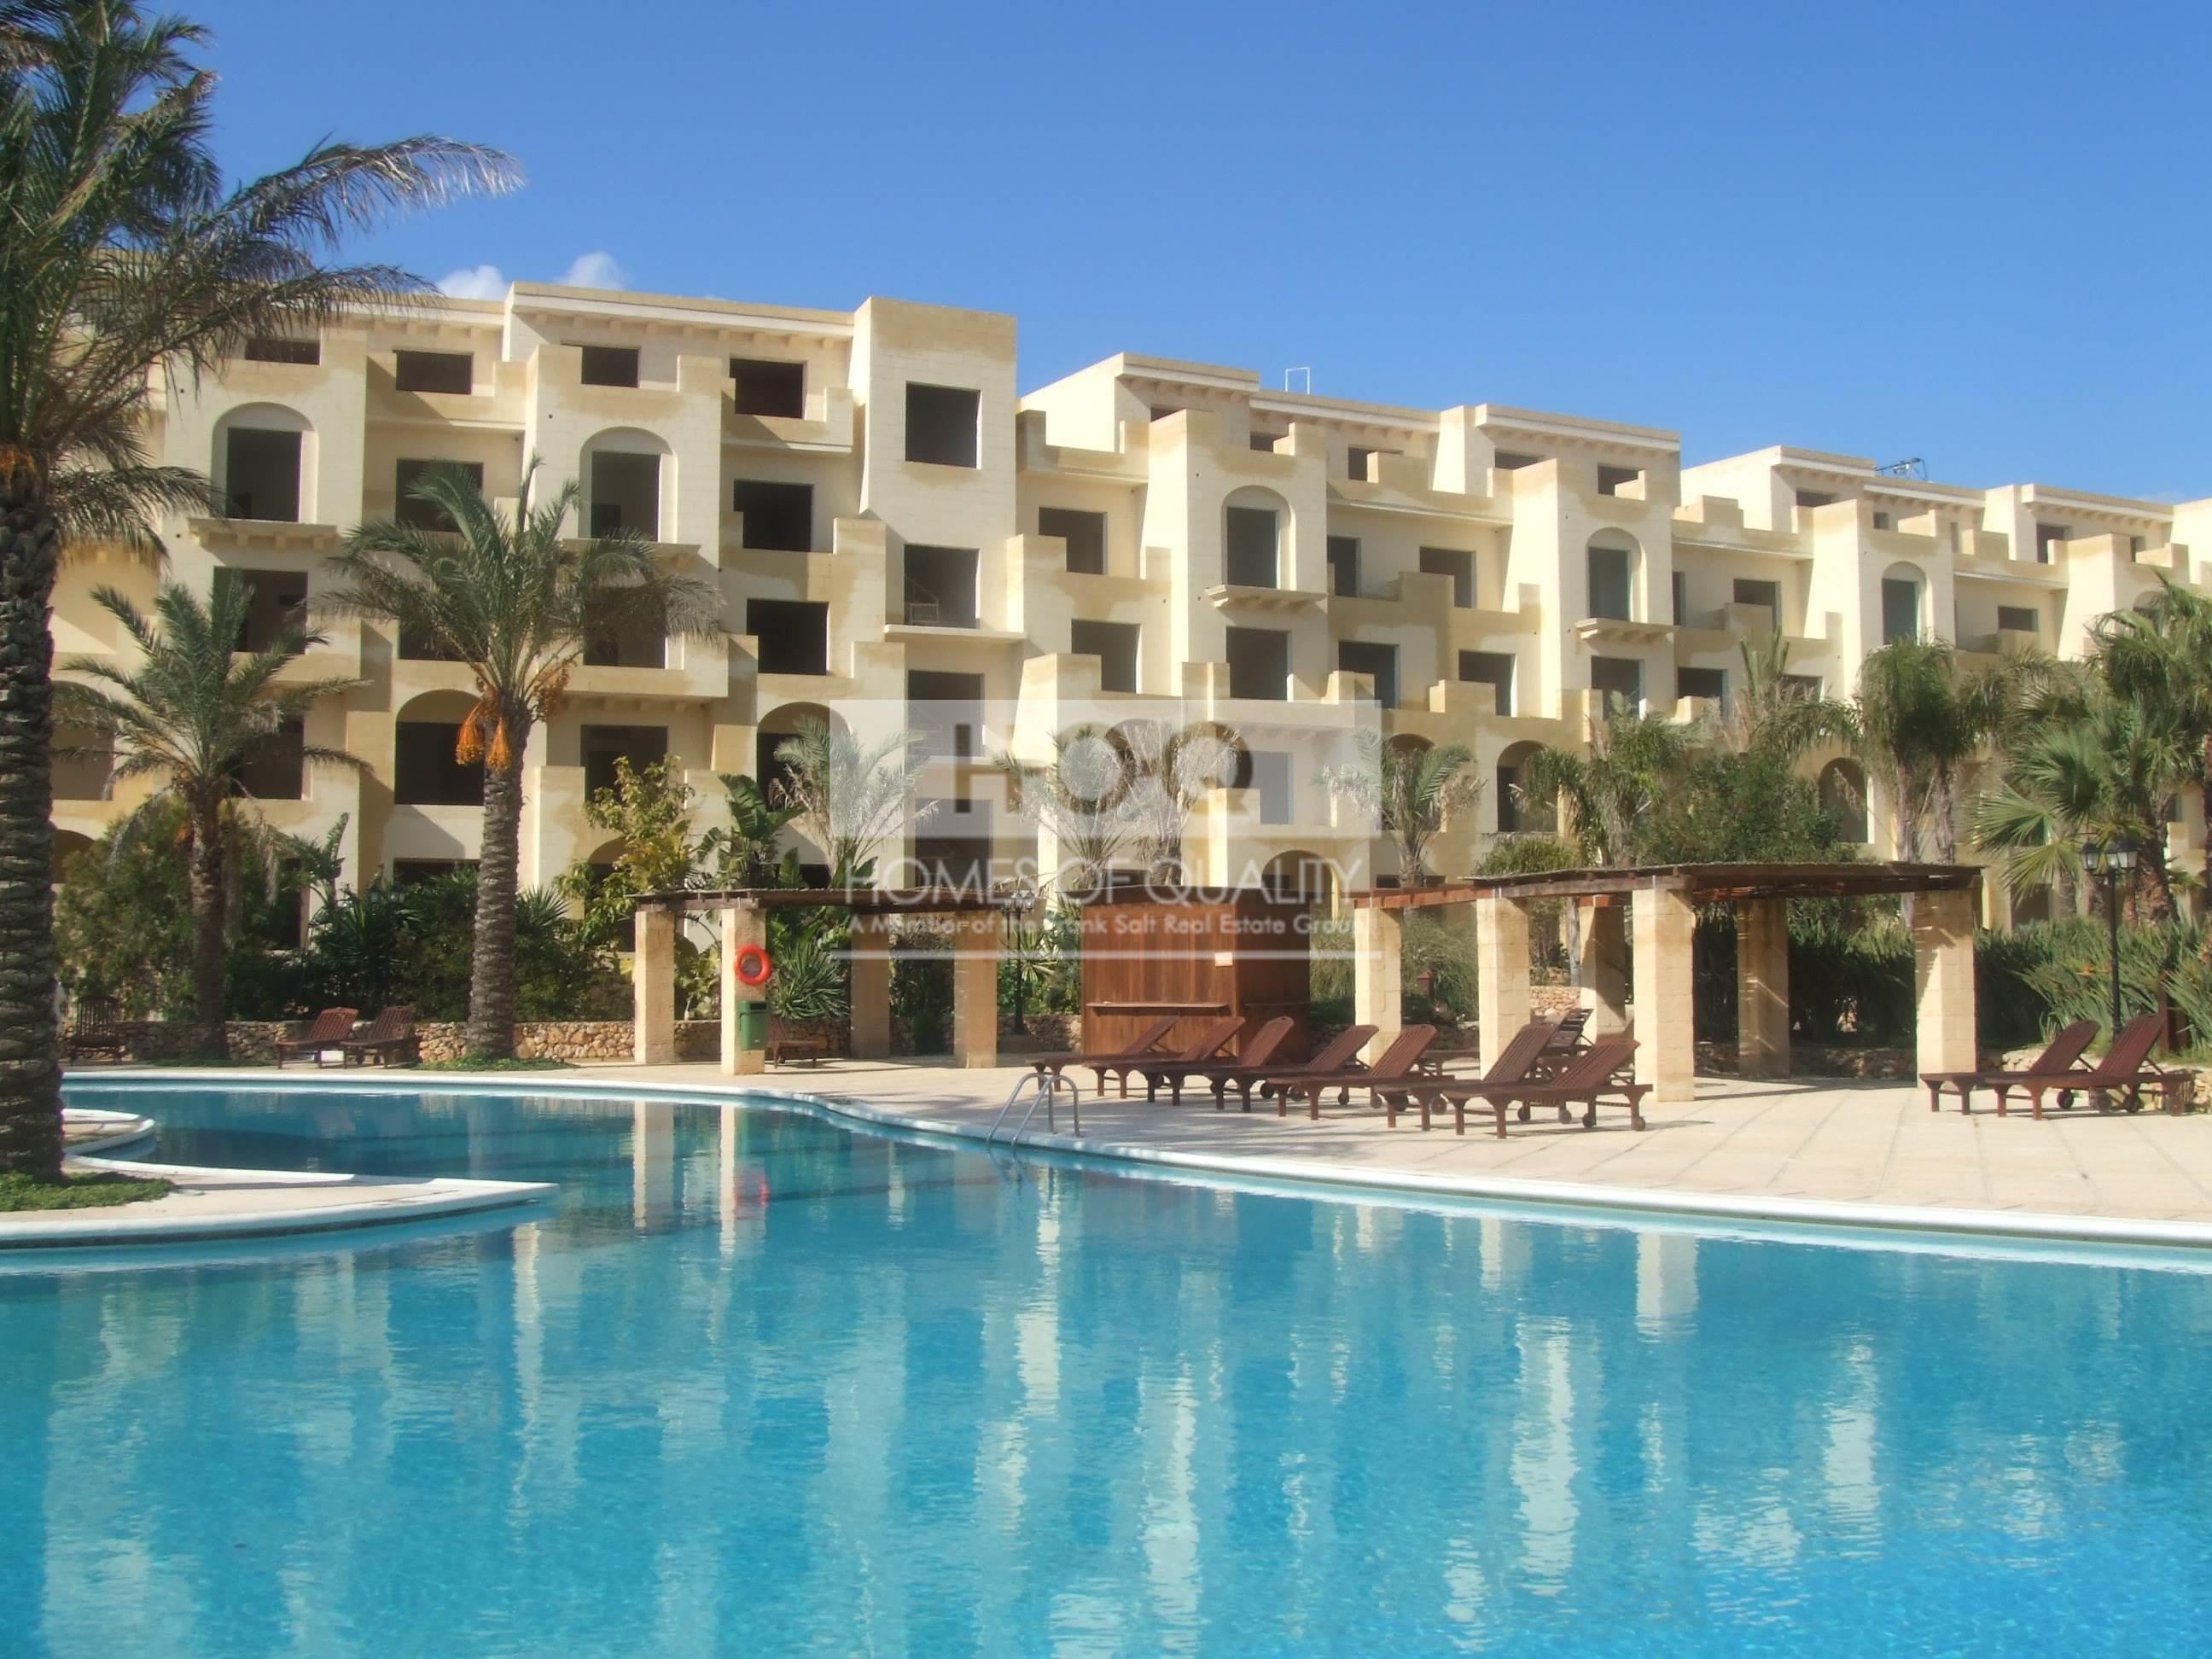 Apartment in Kempinski for Sale Malta